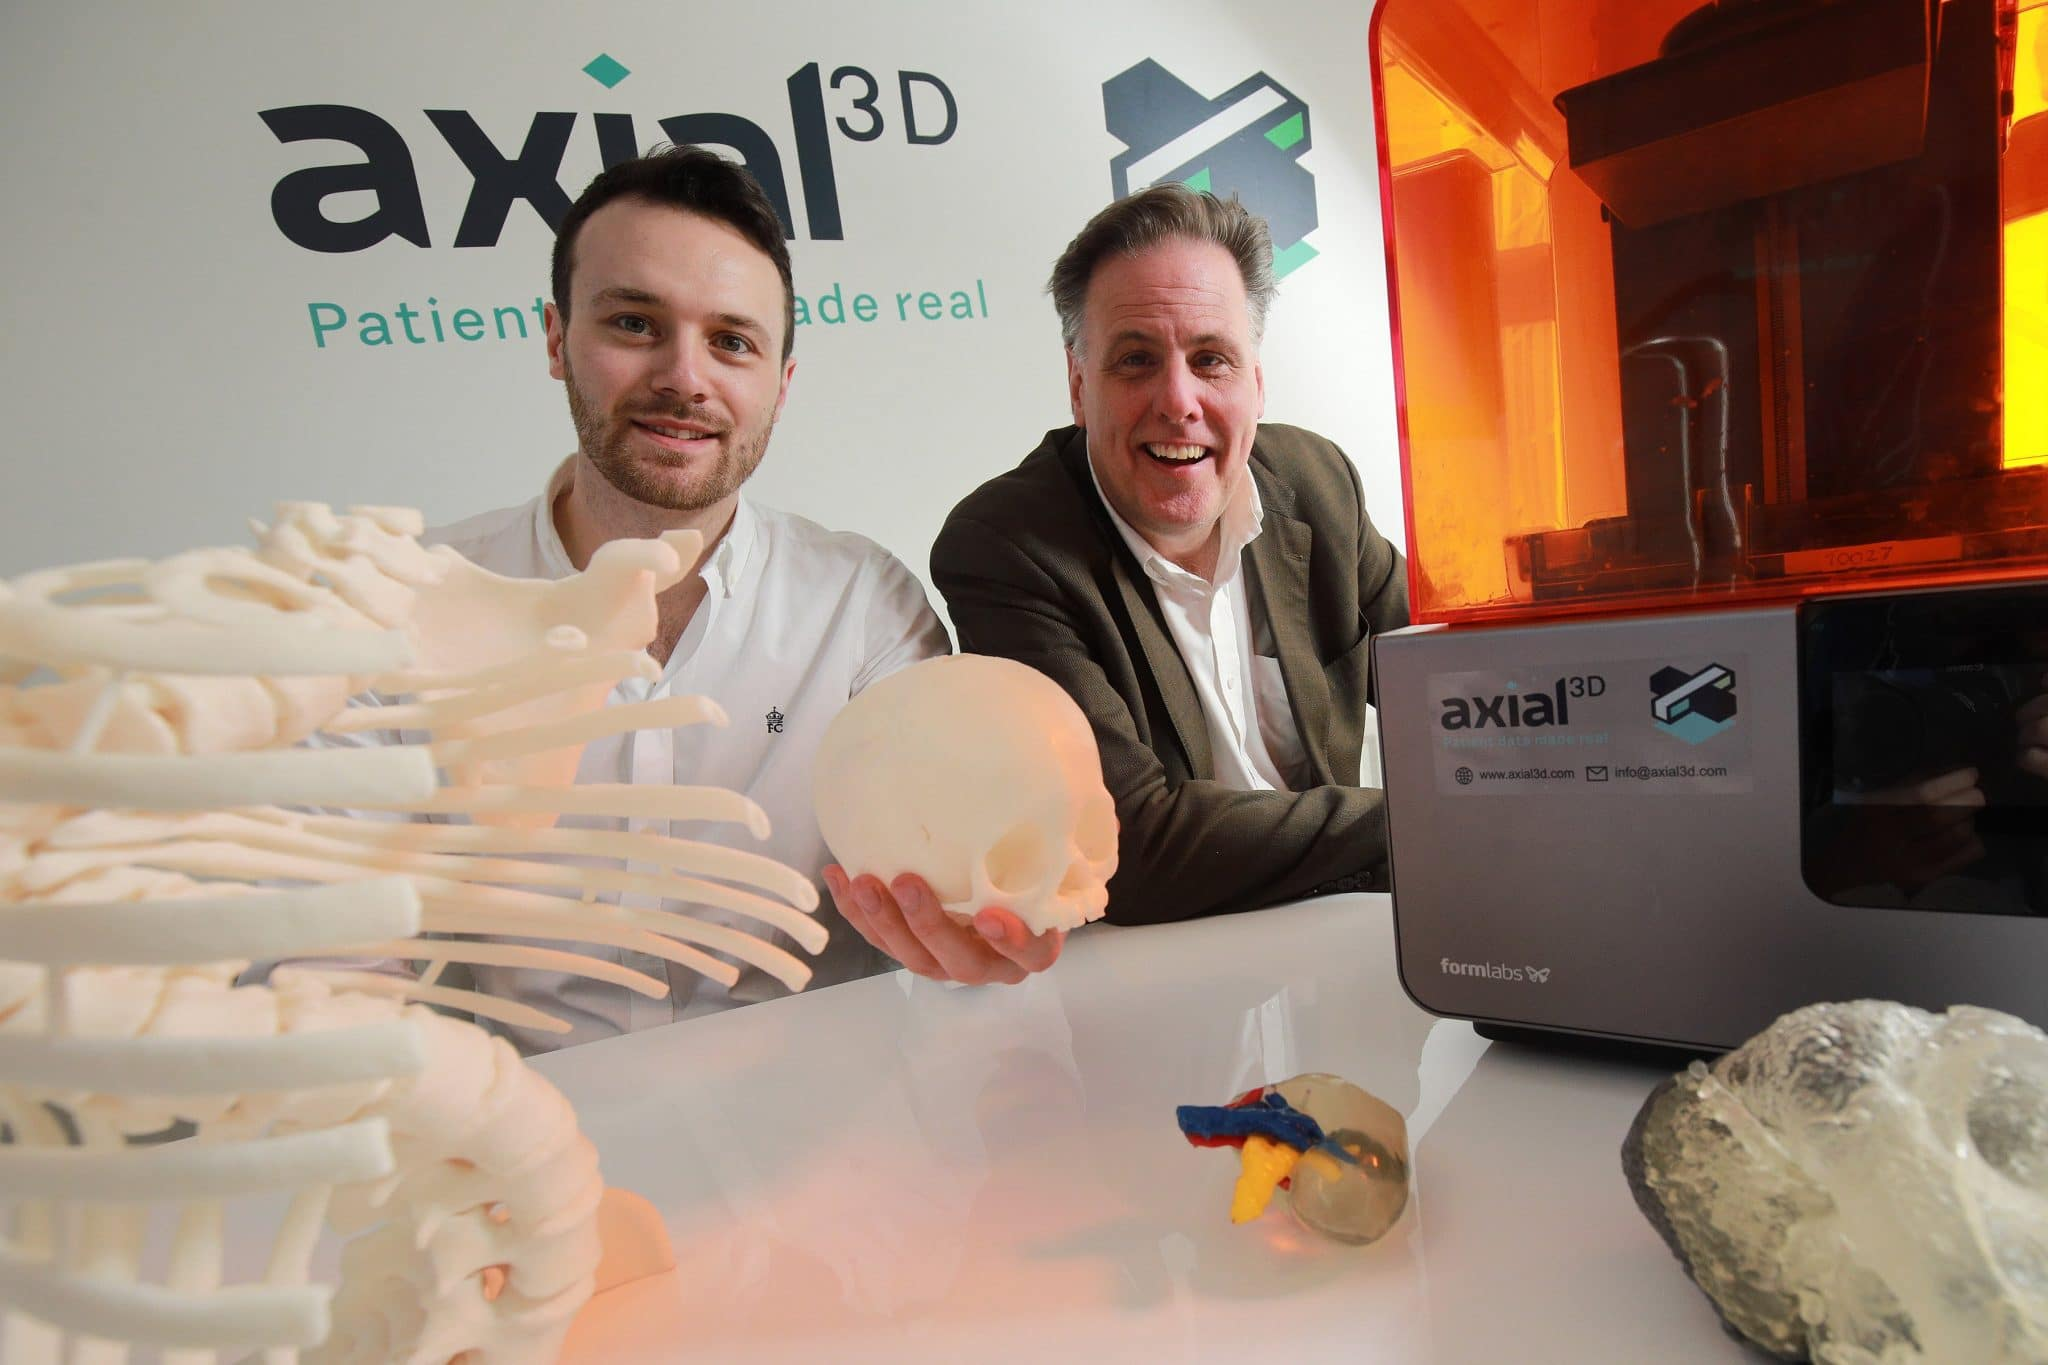 axial3D $3 million funding